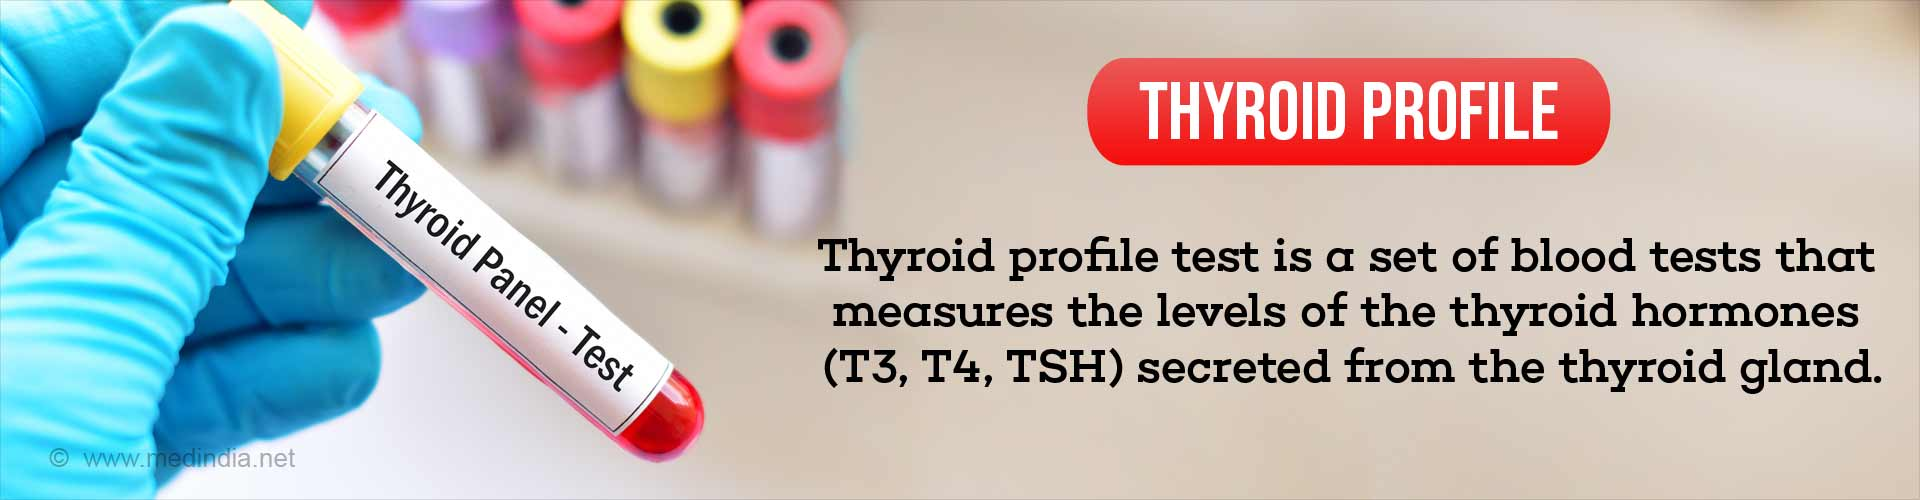 When to do a Thyroid Peofile Test?